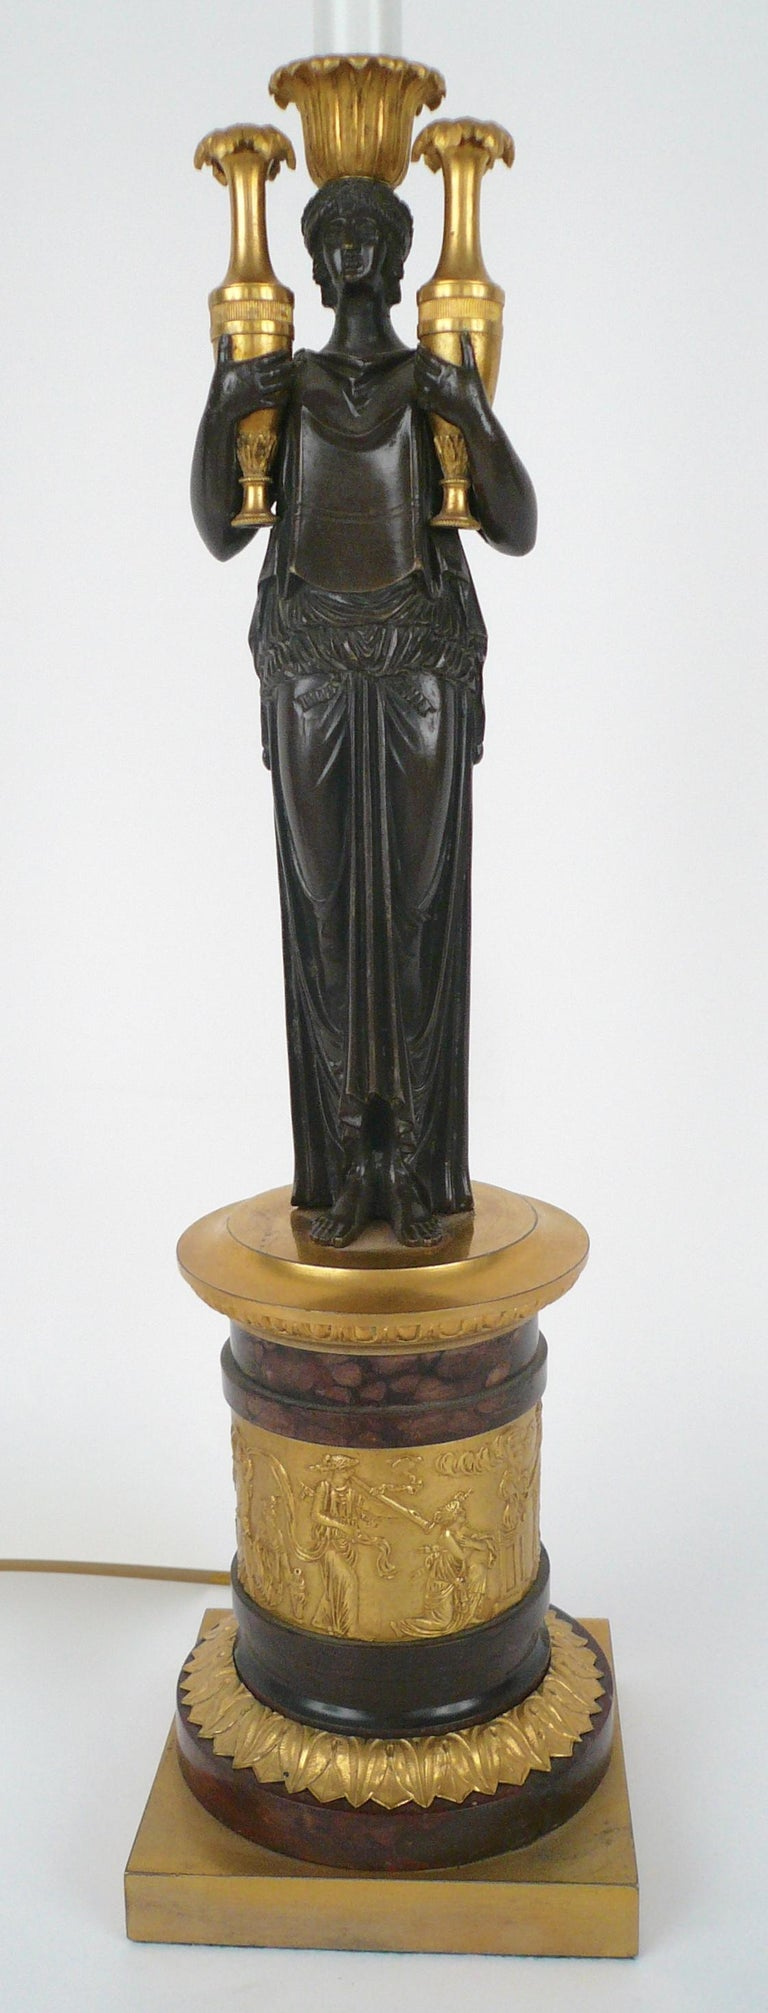 This fine quality lamp base features a gilt classical frieze, and a patinated bronze figure of a classical maiden.